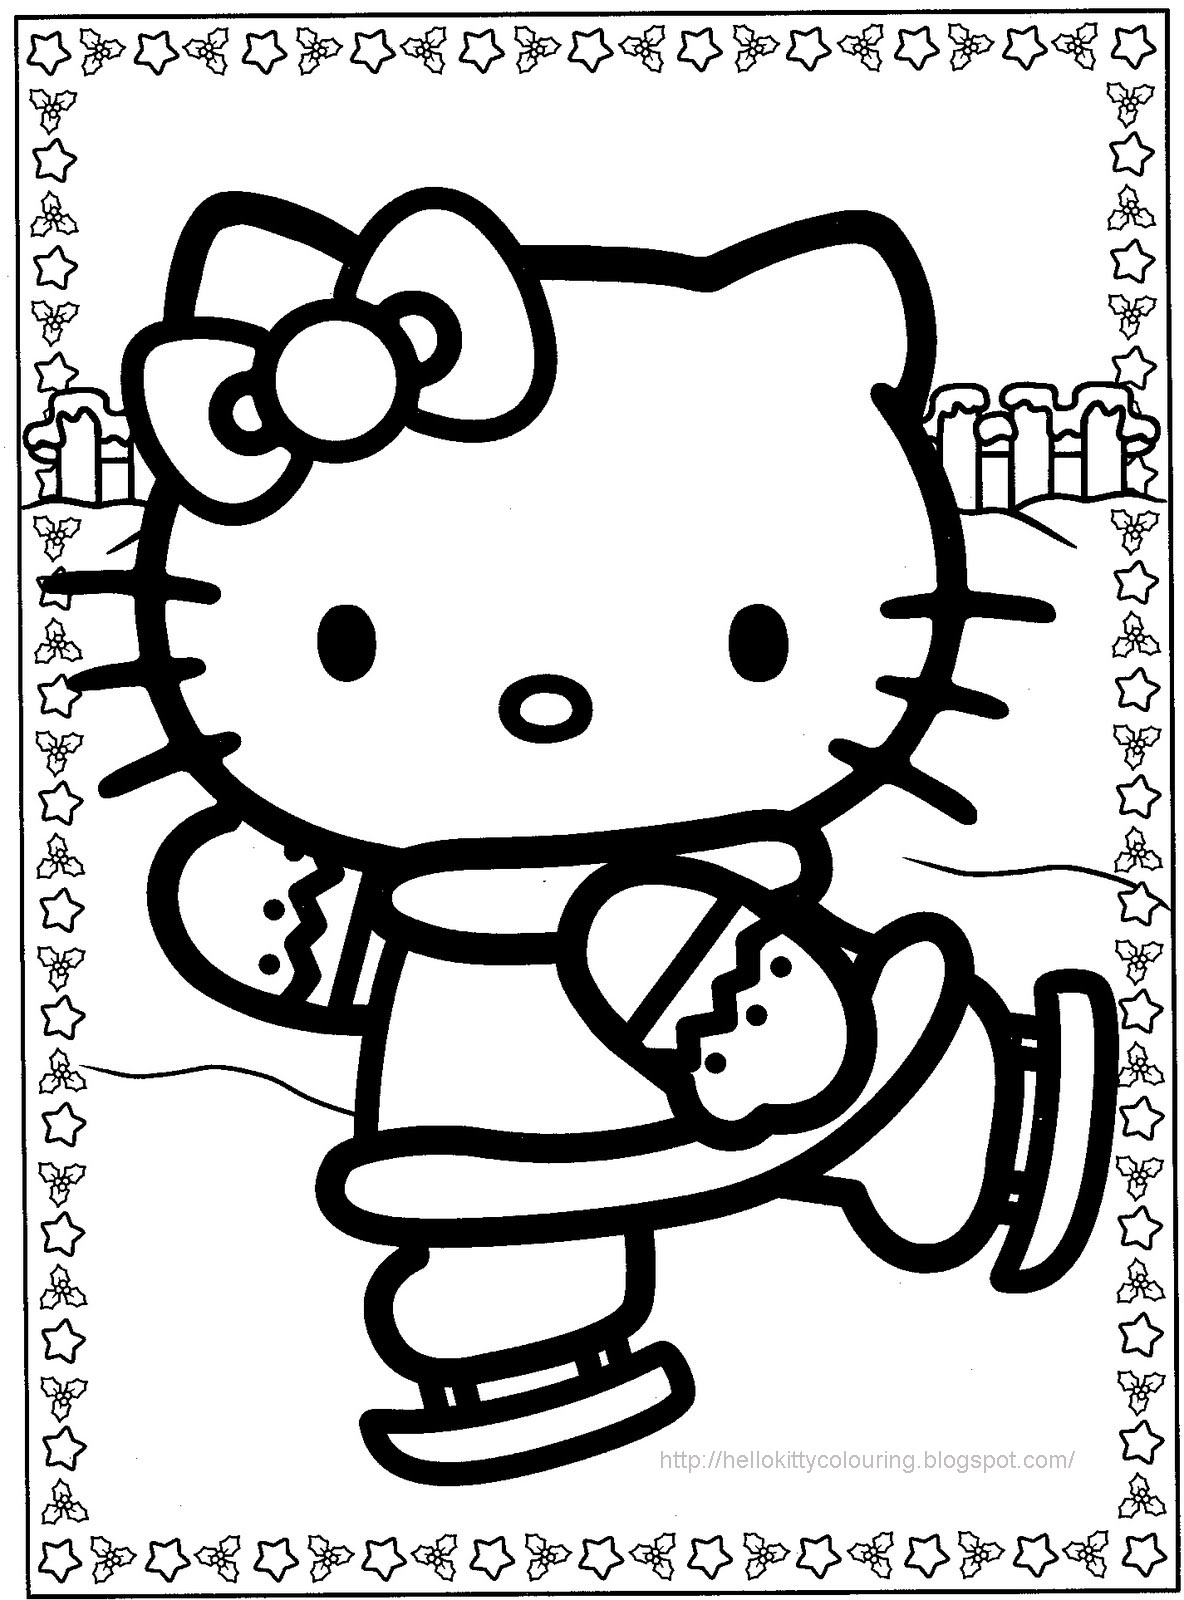 a coloring pages of hello kitty | Hello Kitty Christmas Coloring Pages #1 | Hello Kitty Forever